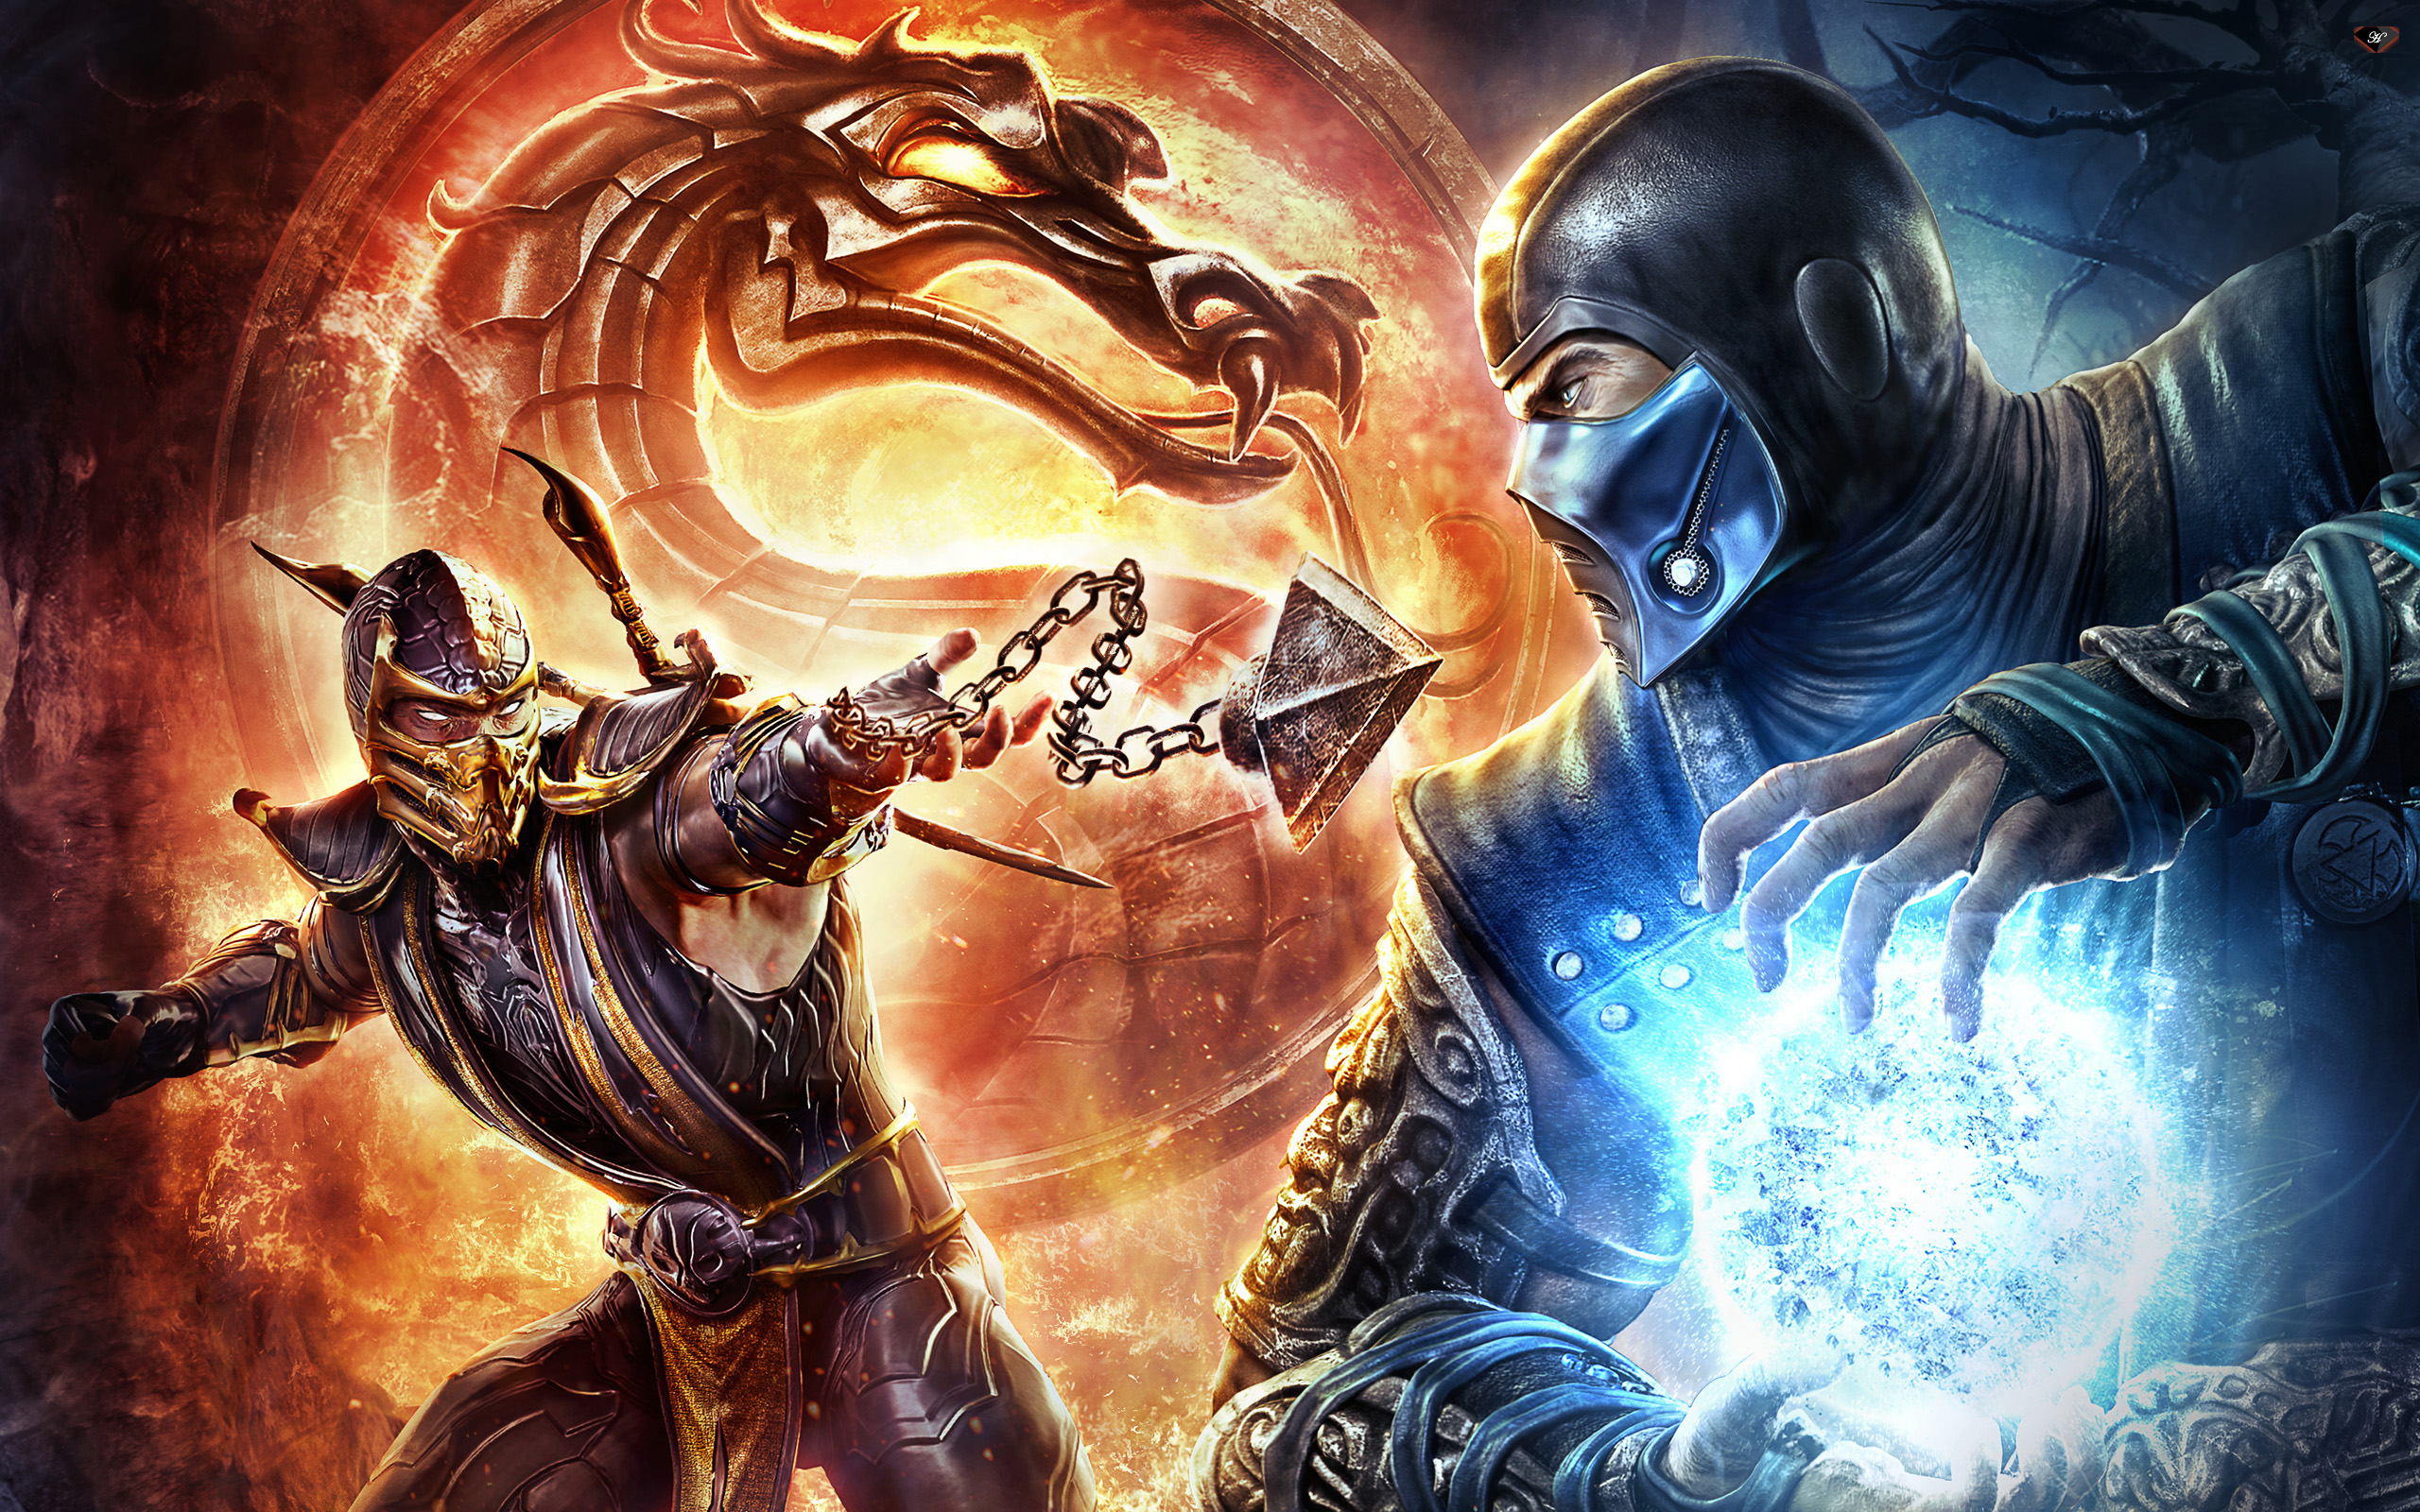 Mortal Kombat Wallpaper 1920x1080